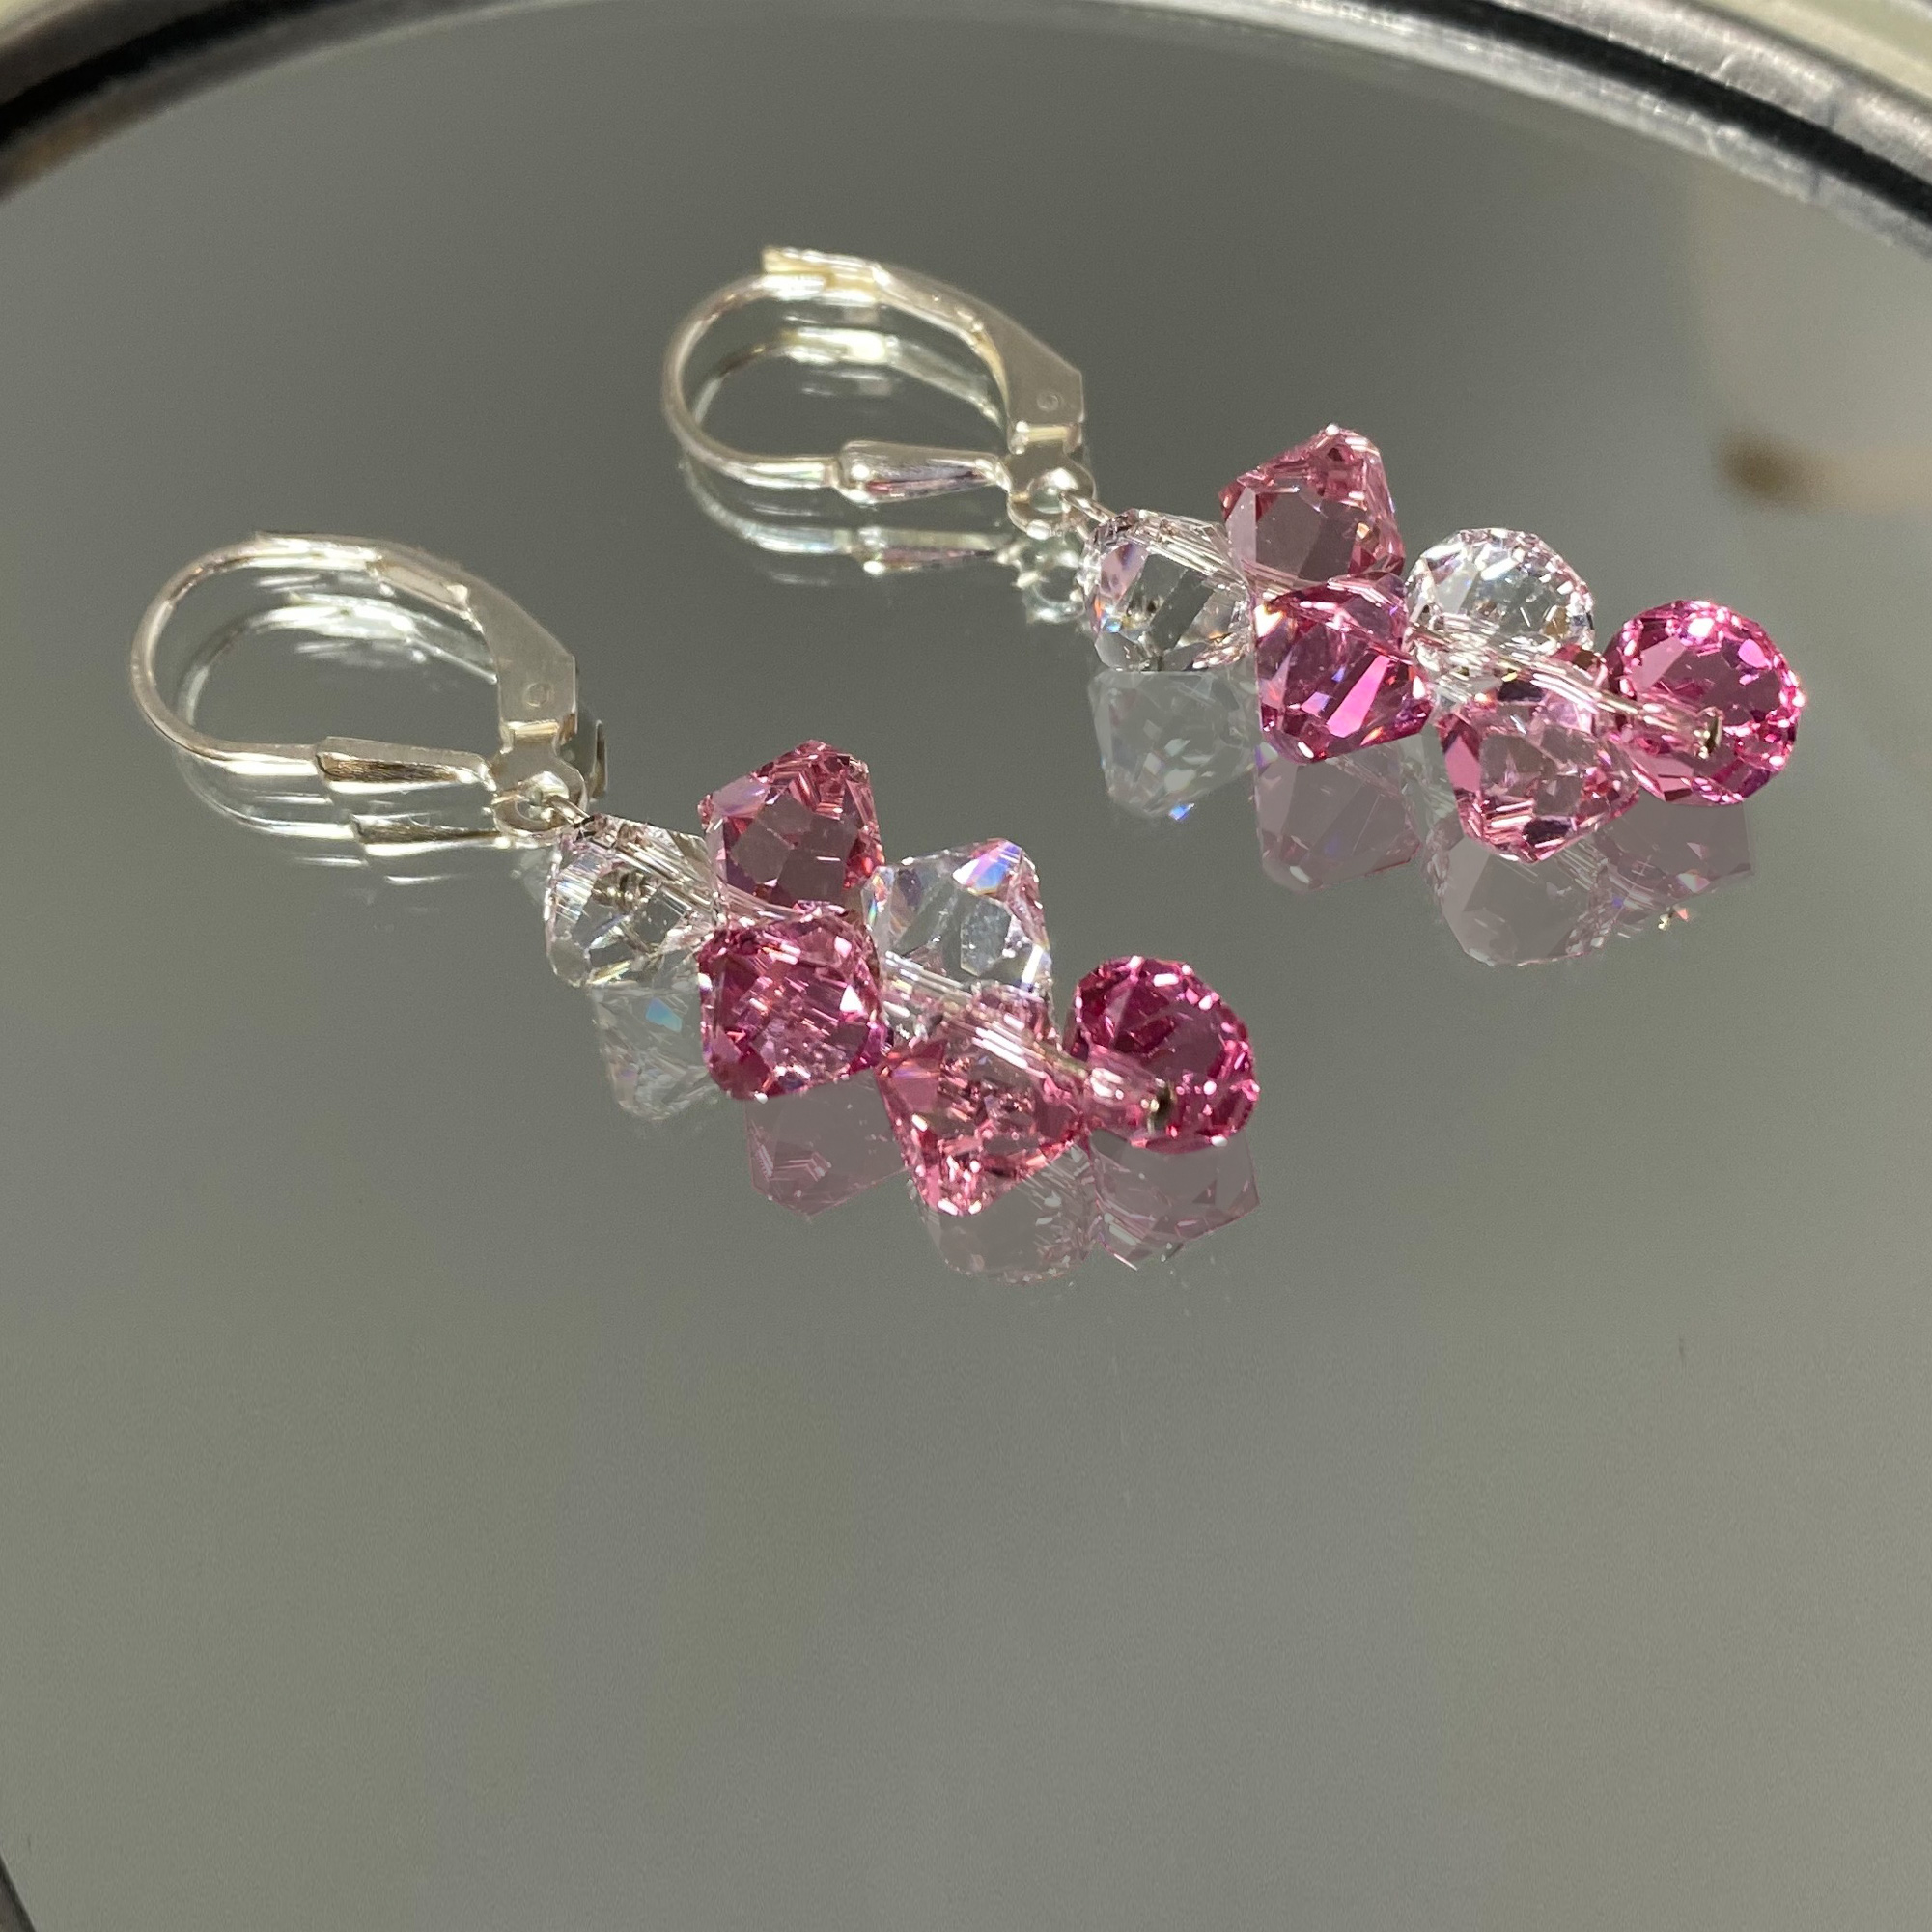 Made-with-Swarovski-Elements-Crystal-Drop-Sterling-Silver-Earrings thumbnail 22